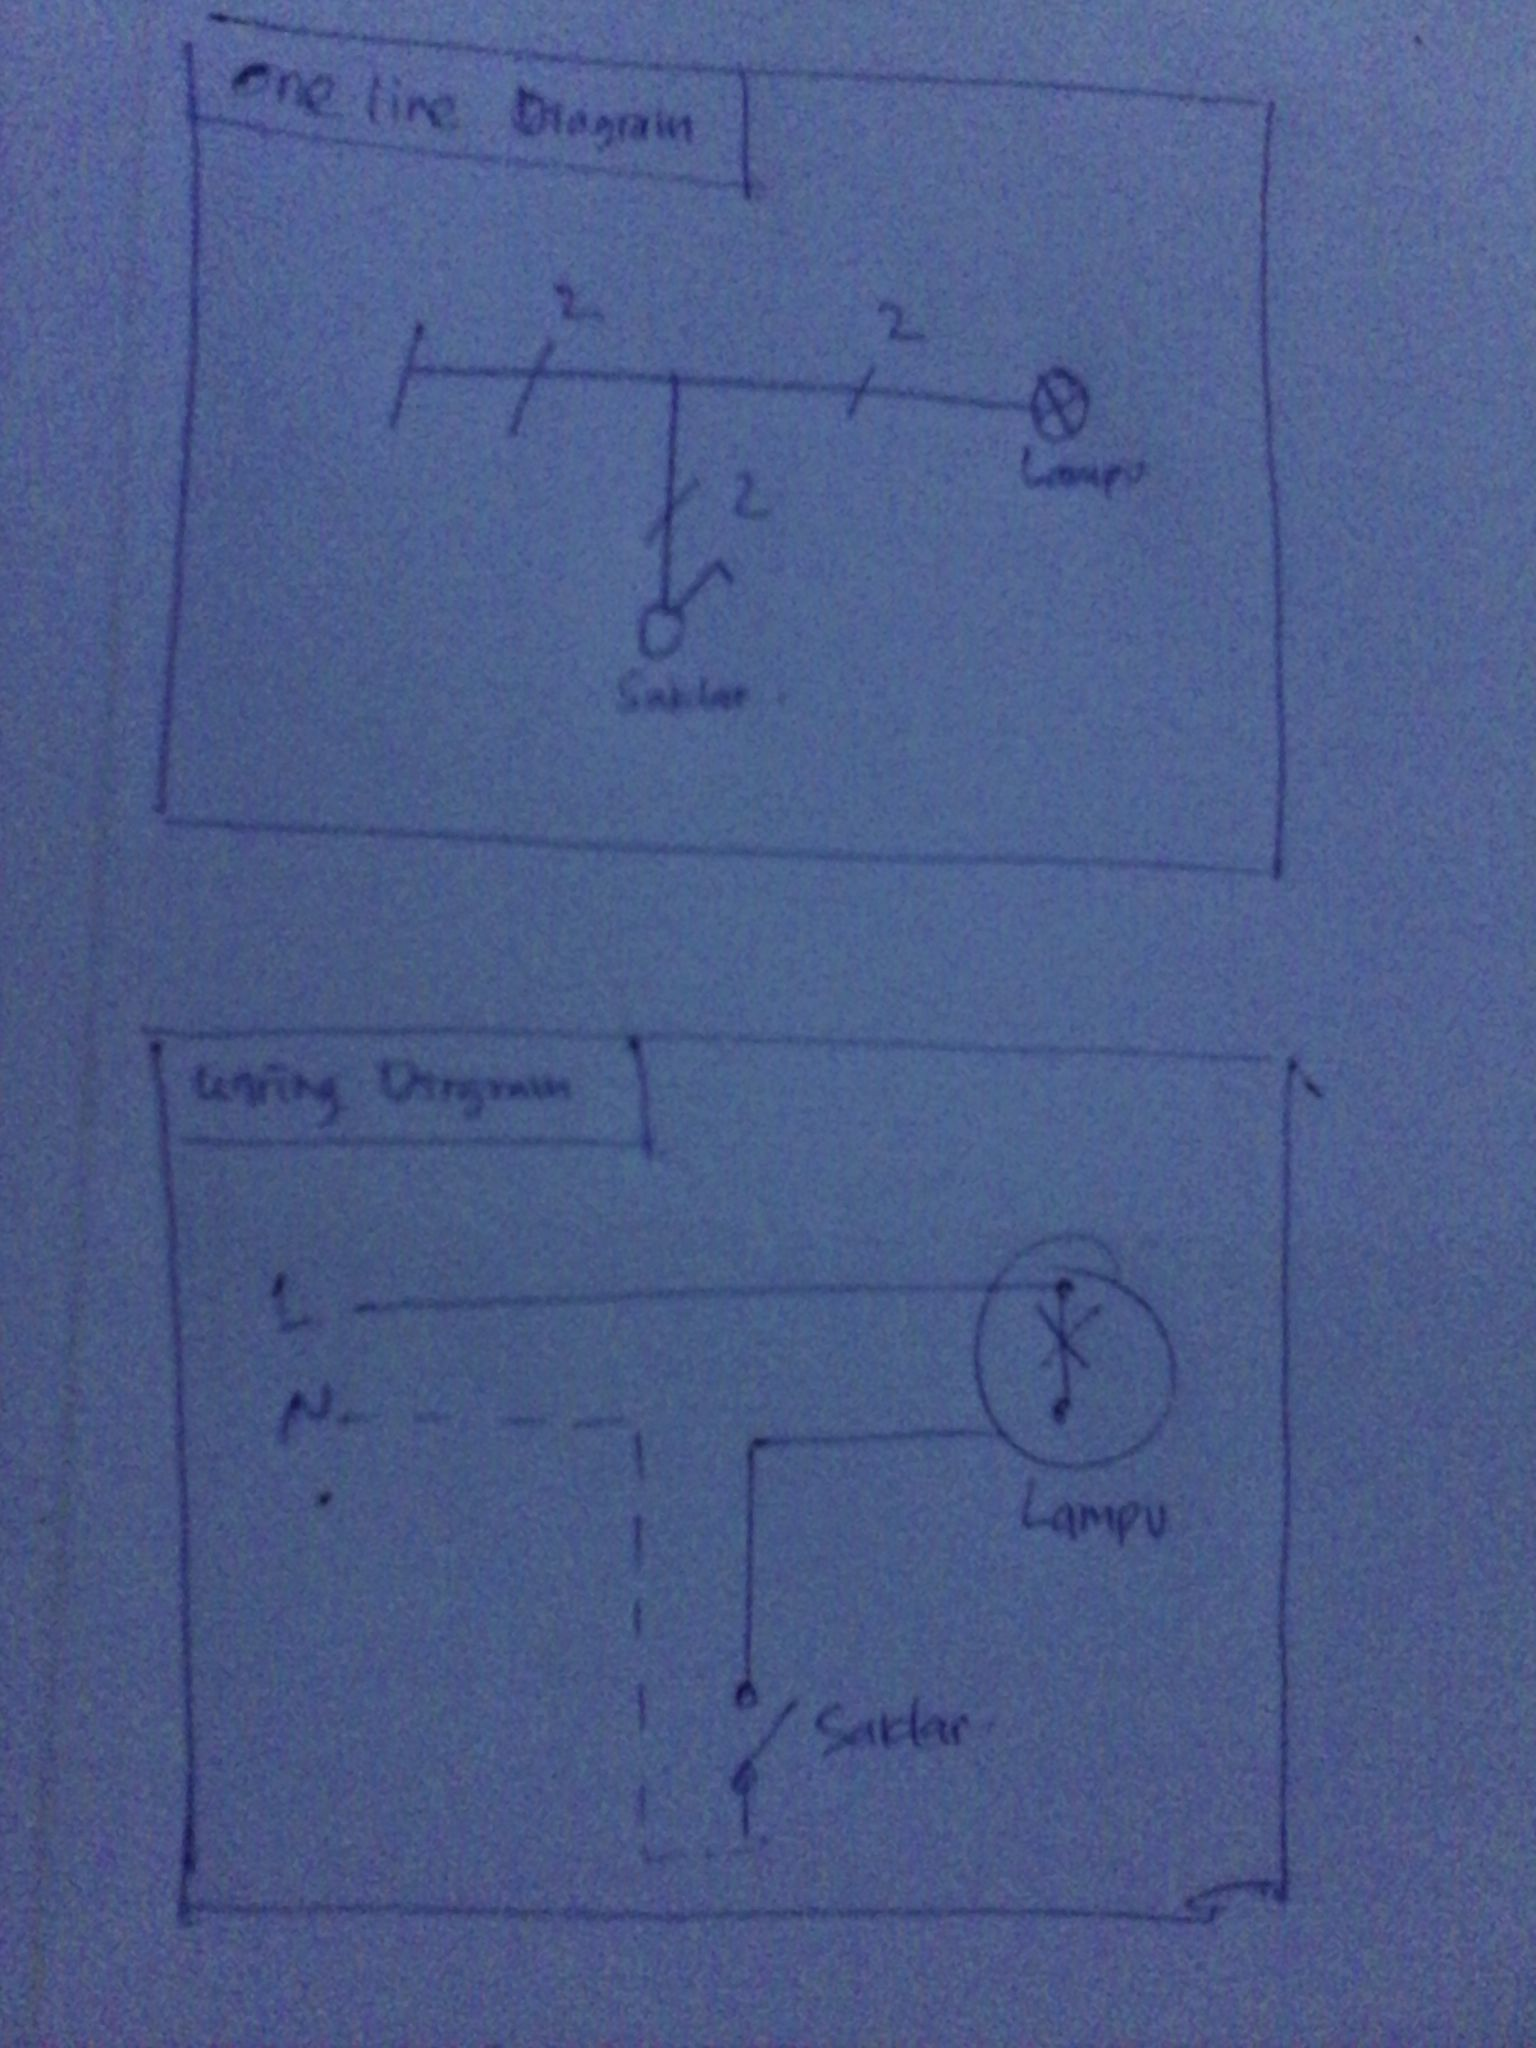 Perbedaan one line diagram dan wiring diagram indra blogs image ccuart Choice Image